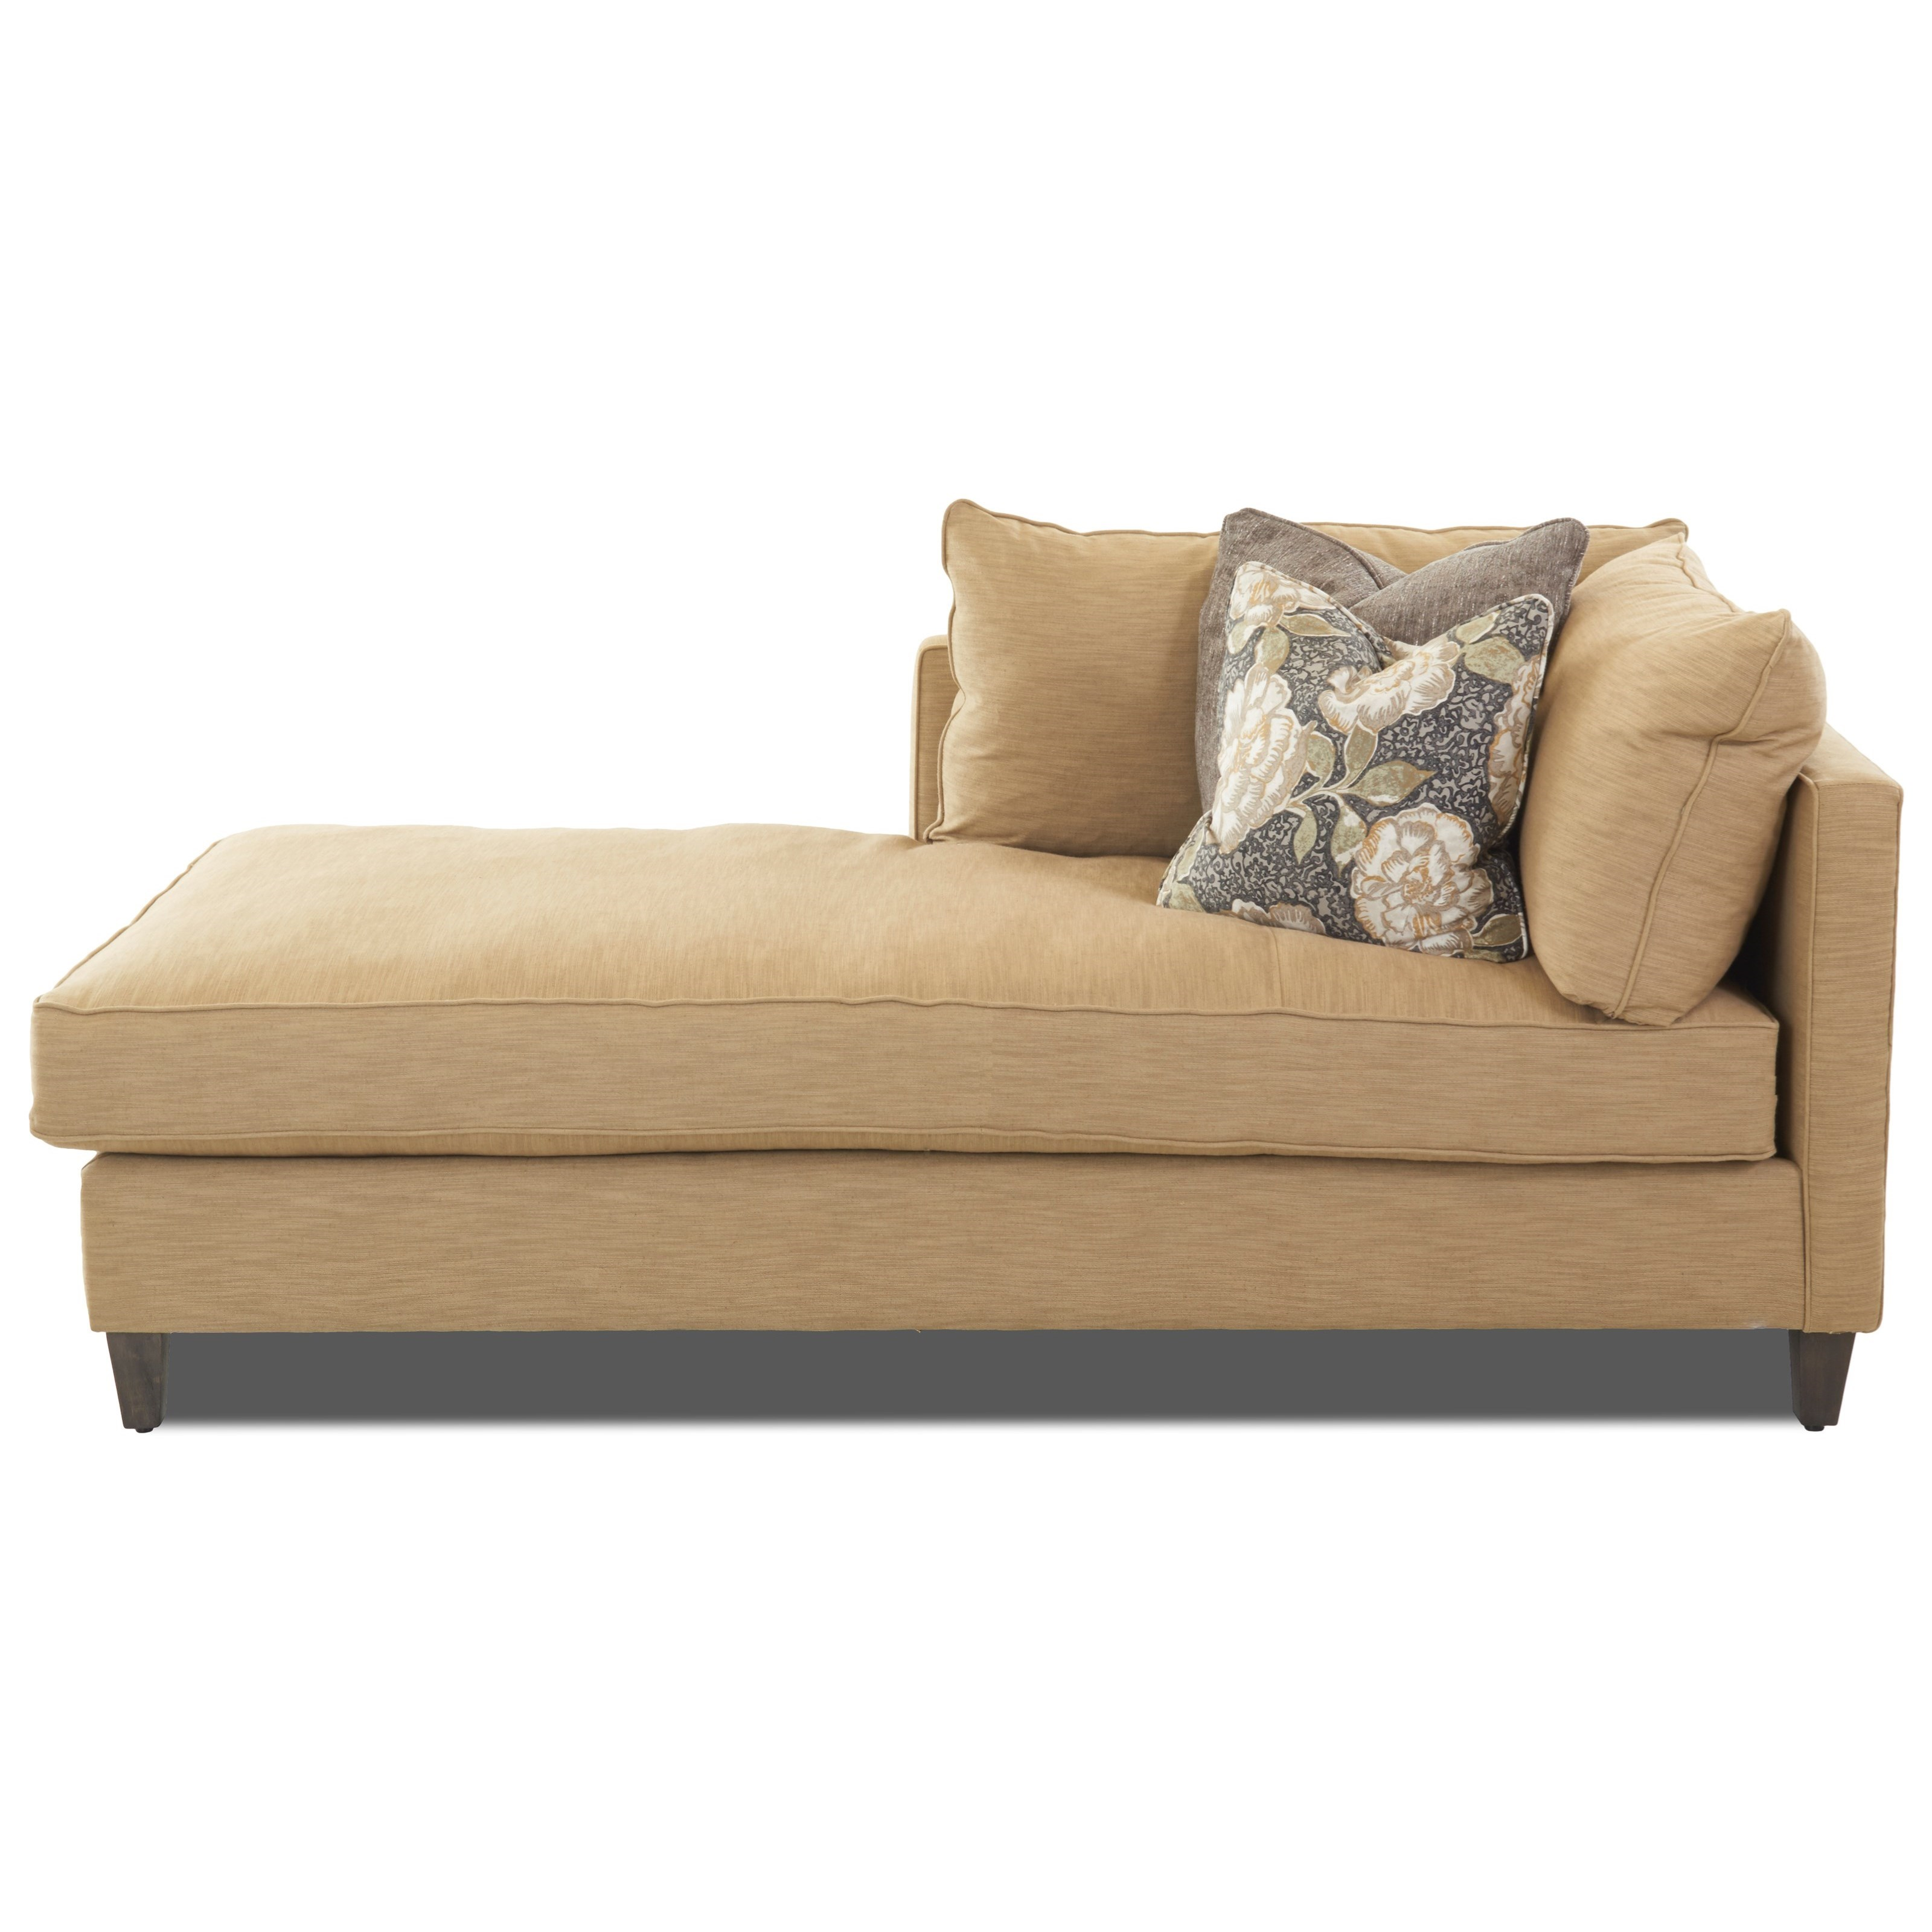 1 Arm Left Facing Chaise Lounge with Down Blend Cushions